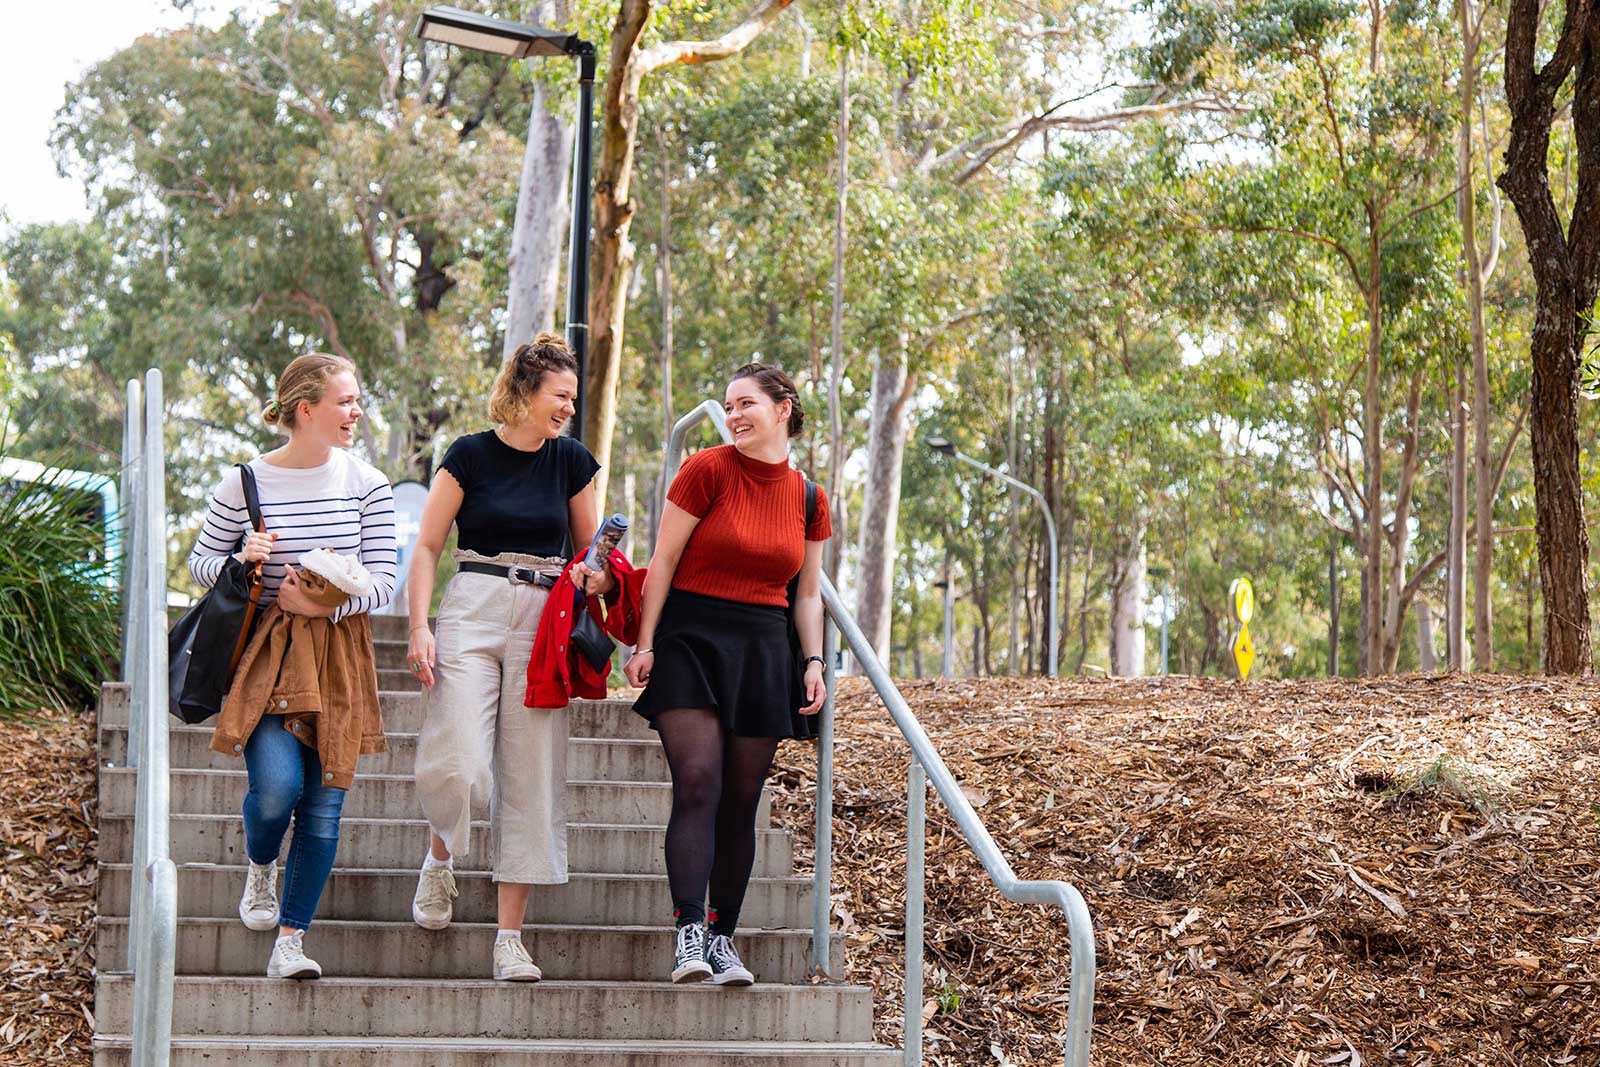 3 girls walk down a set of steps in the bushland of the University of Newcastle campus. They are looking at each other smiling.